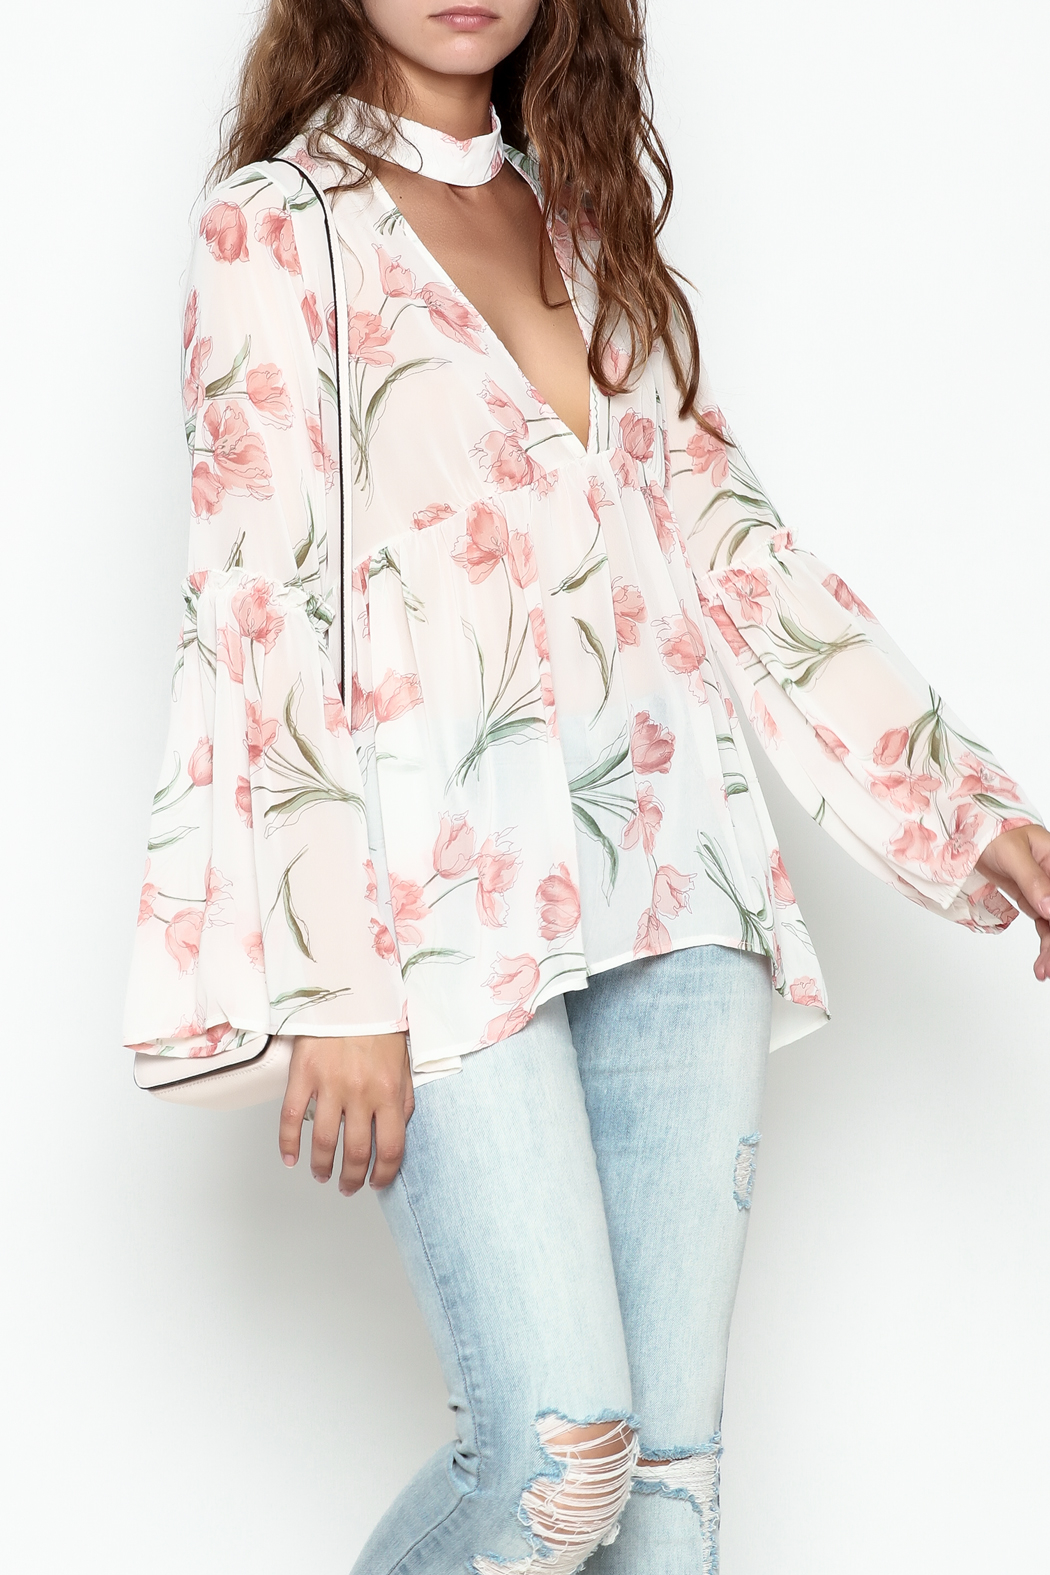 Audrey Sheer Floral Top - Main Image